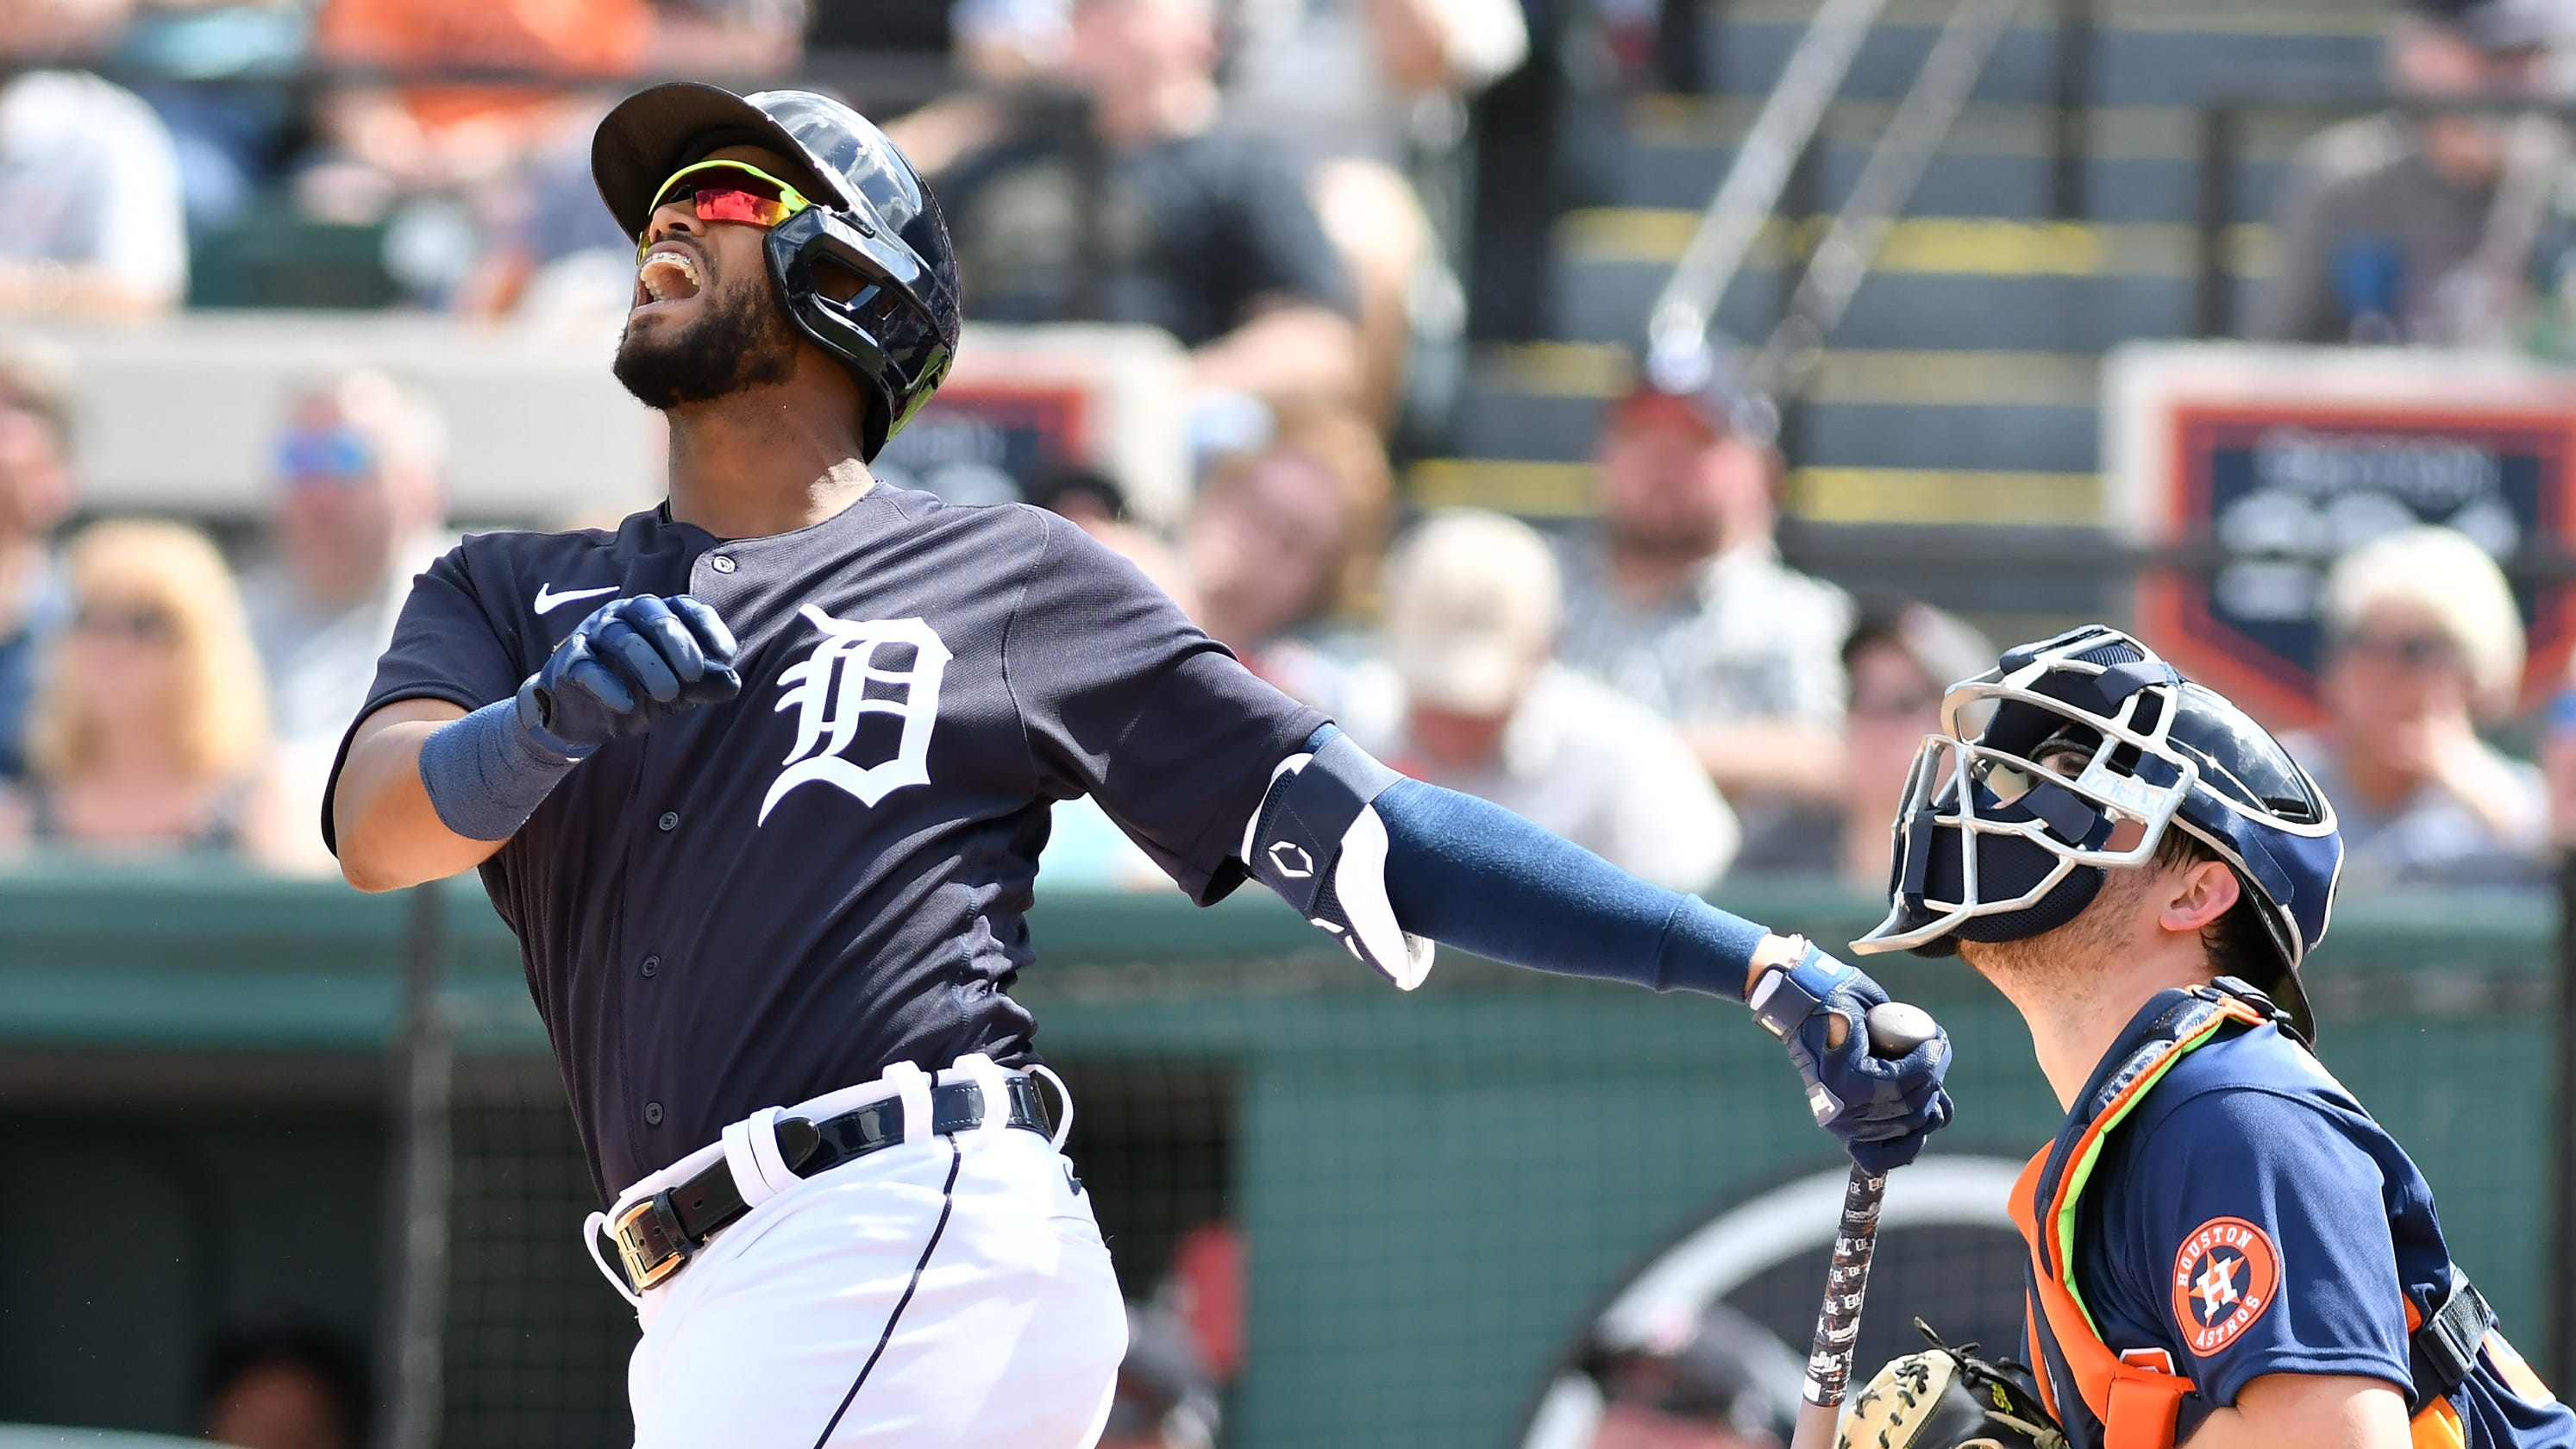 Willi Castro fixes flaw in his defensive mechanics, back in Tigers mix at shortstop